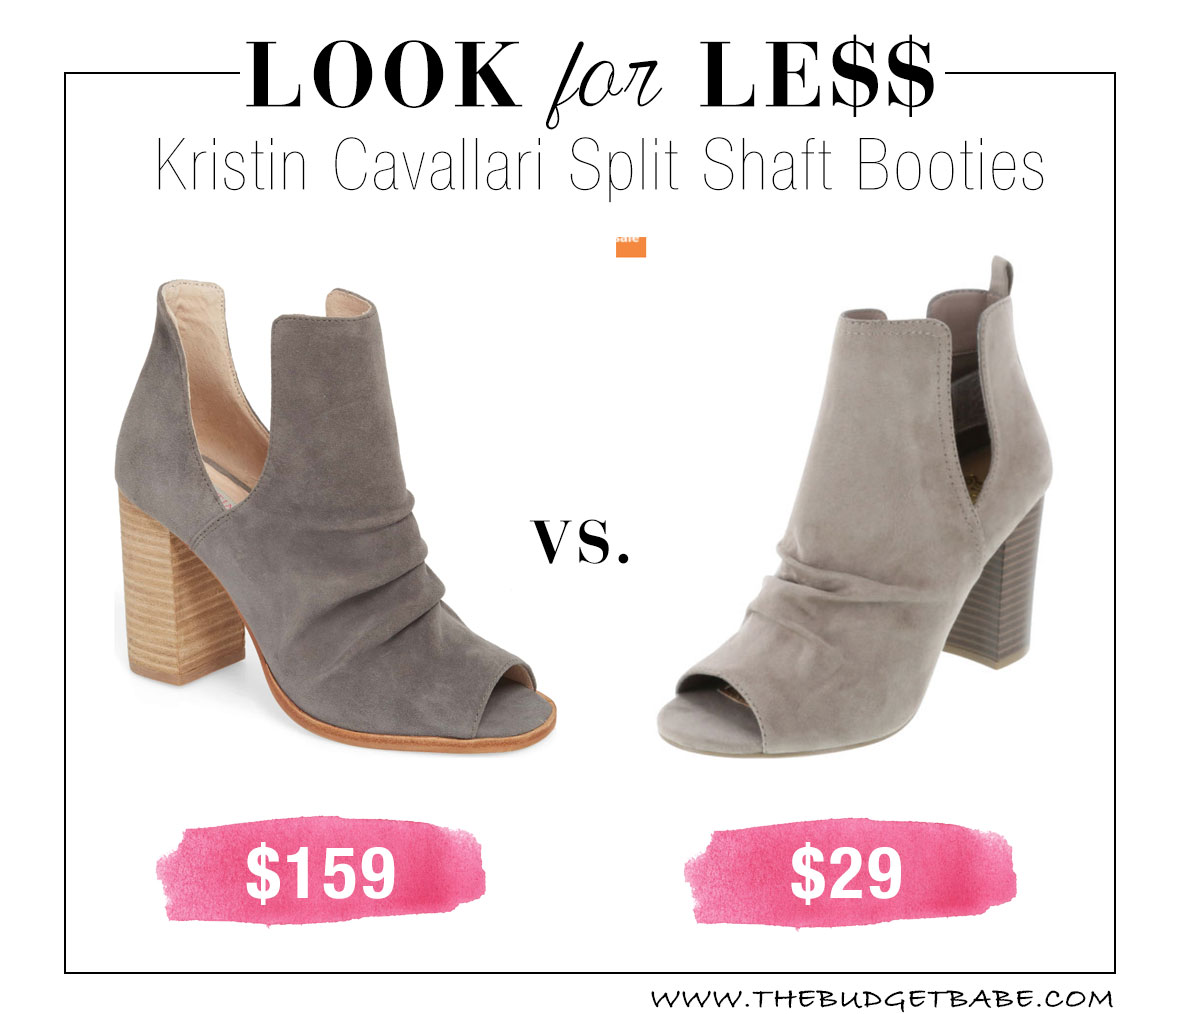 Payless has a great dupe for these Kristin Cavallari ankle booties!